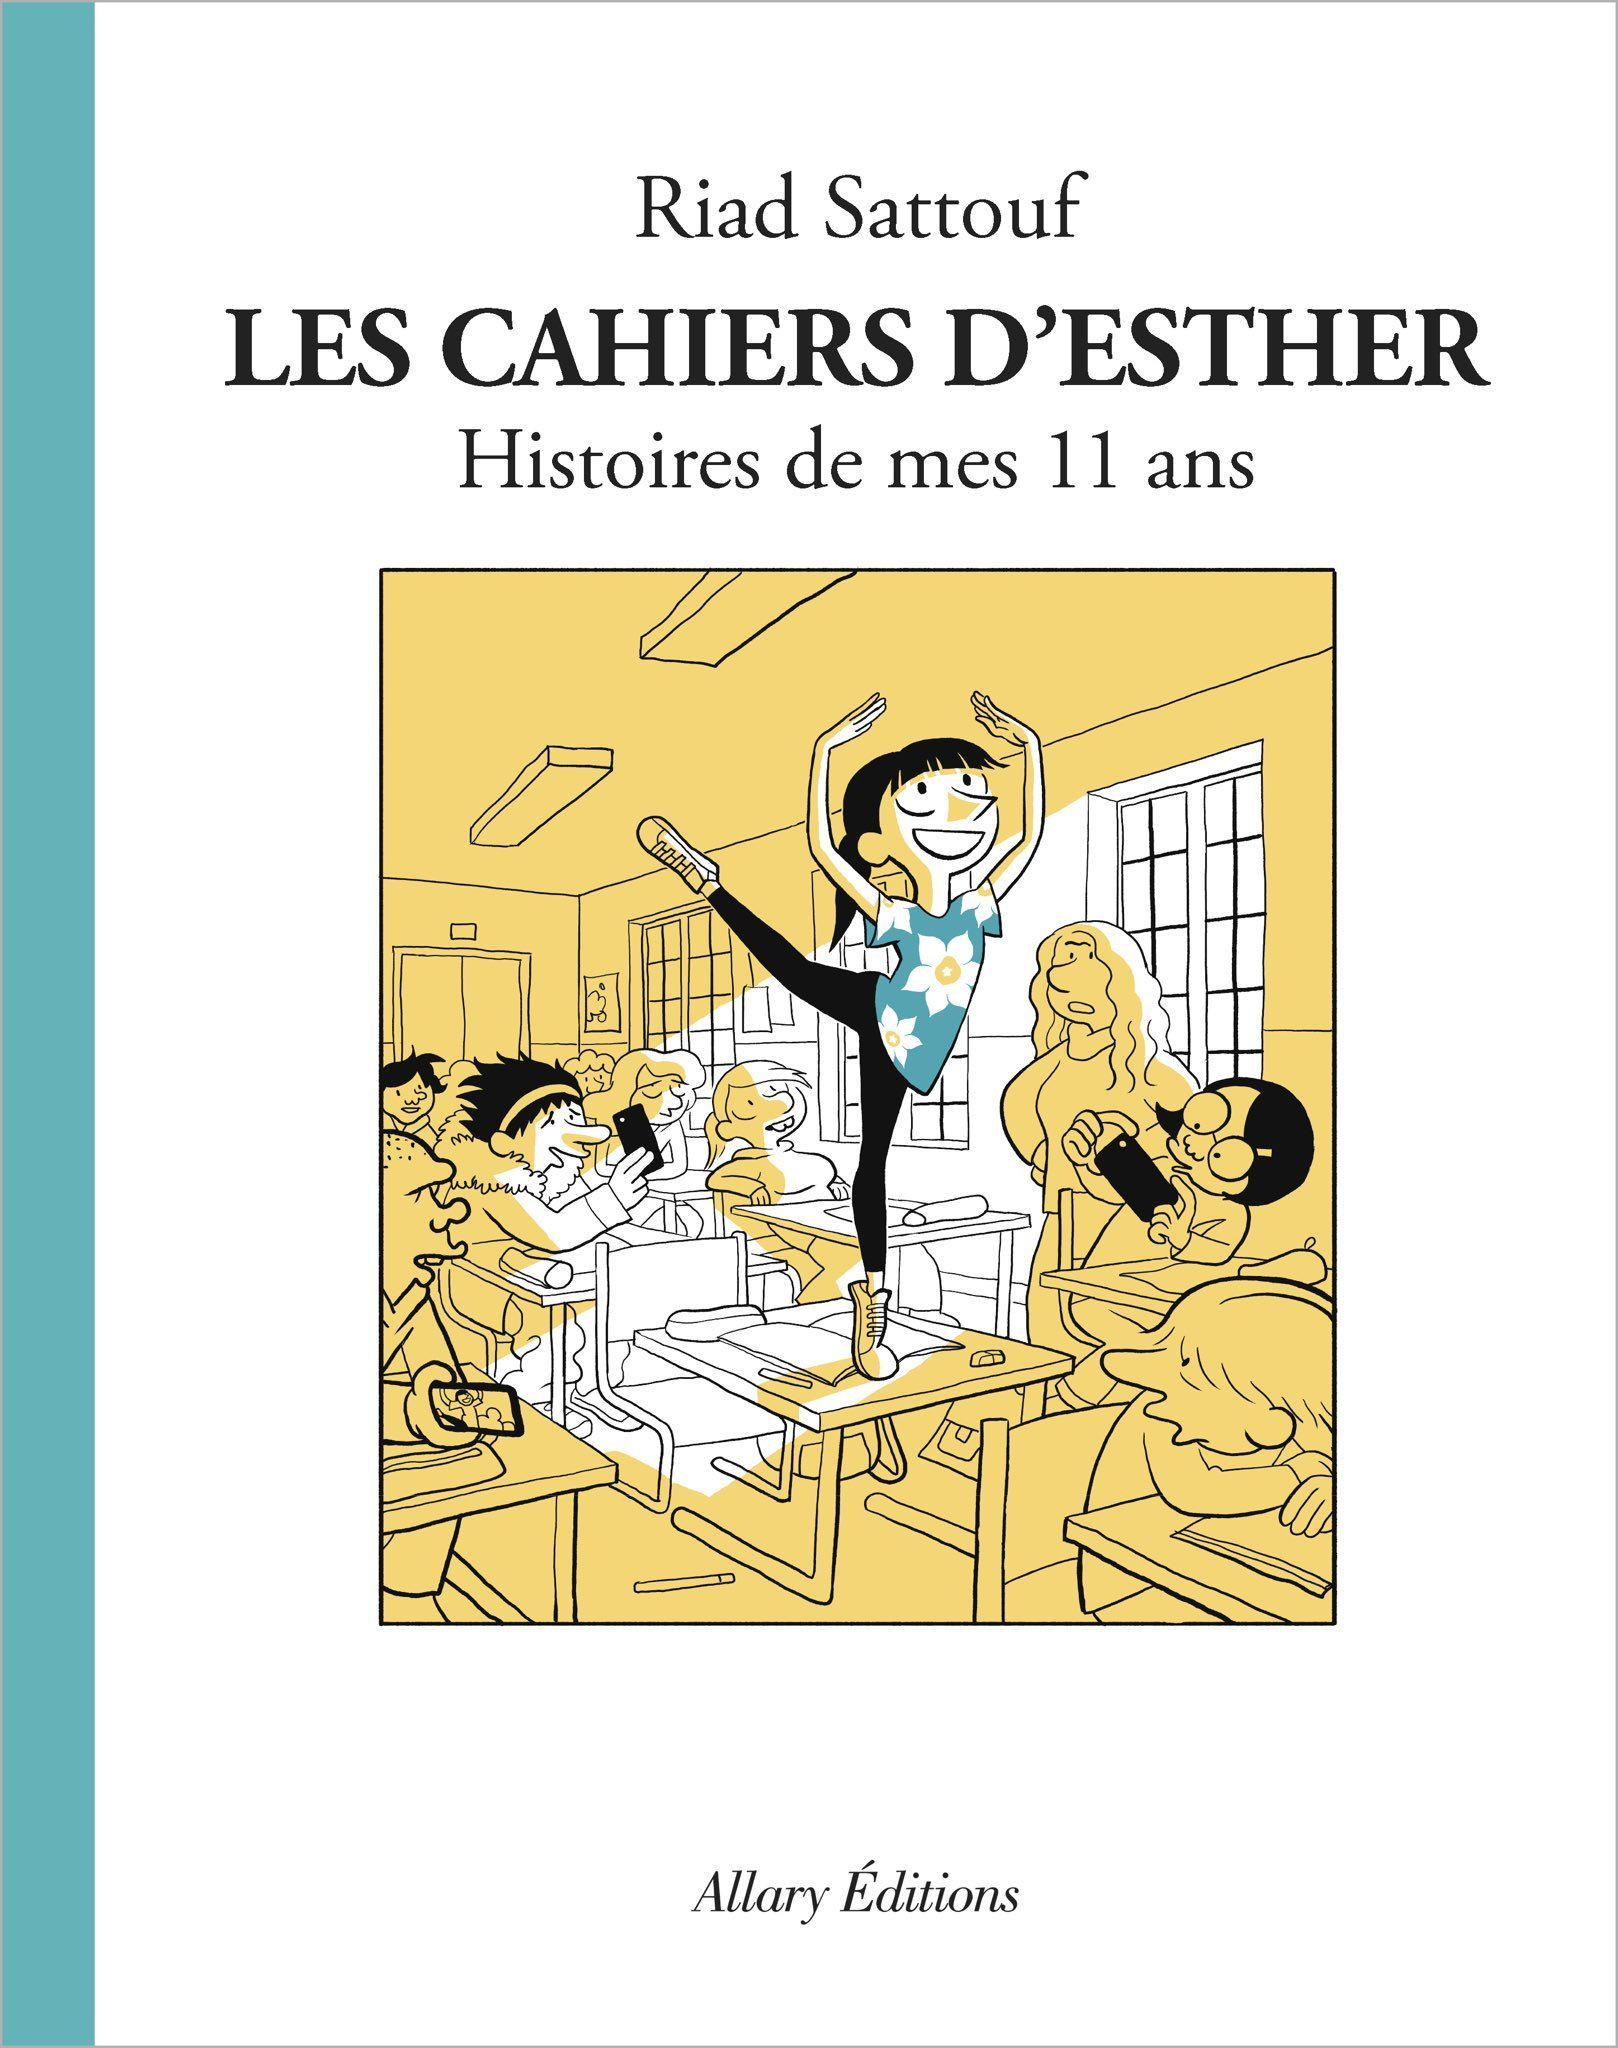 Les cahiers d'Esther - Histoires de mes 11 ans - Riad Sattouf - Allary Editions